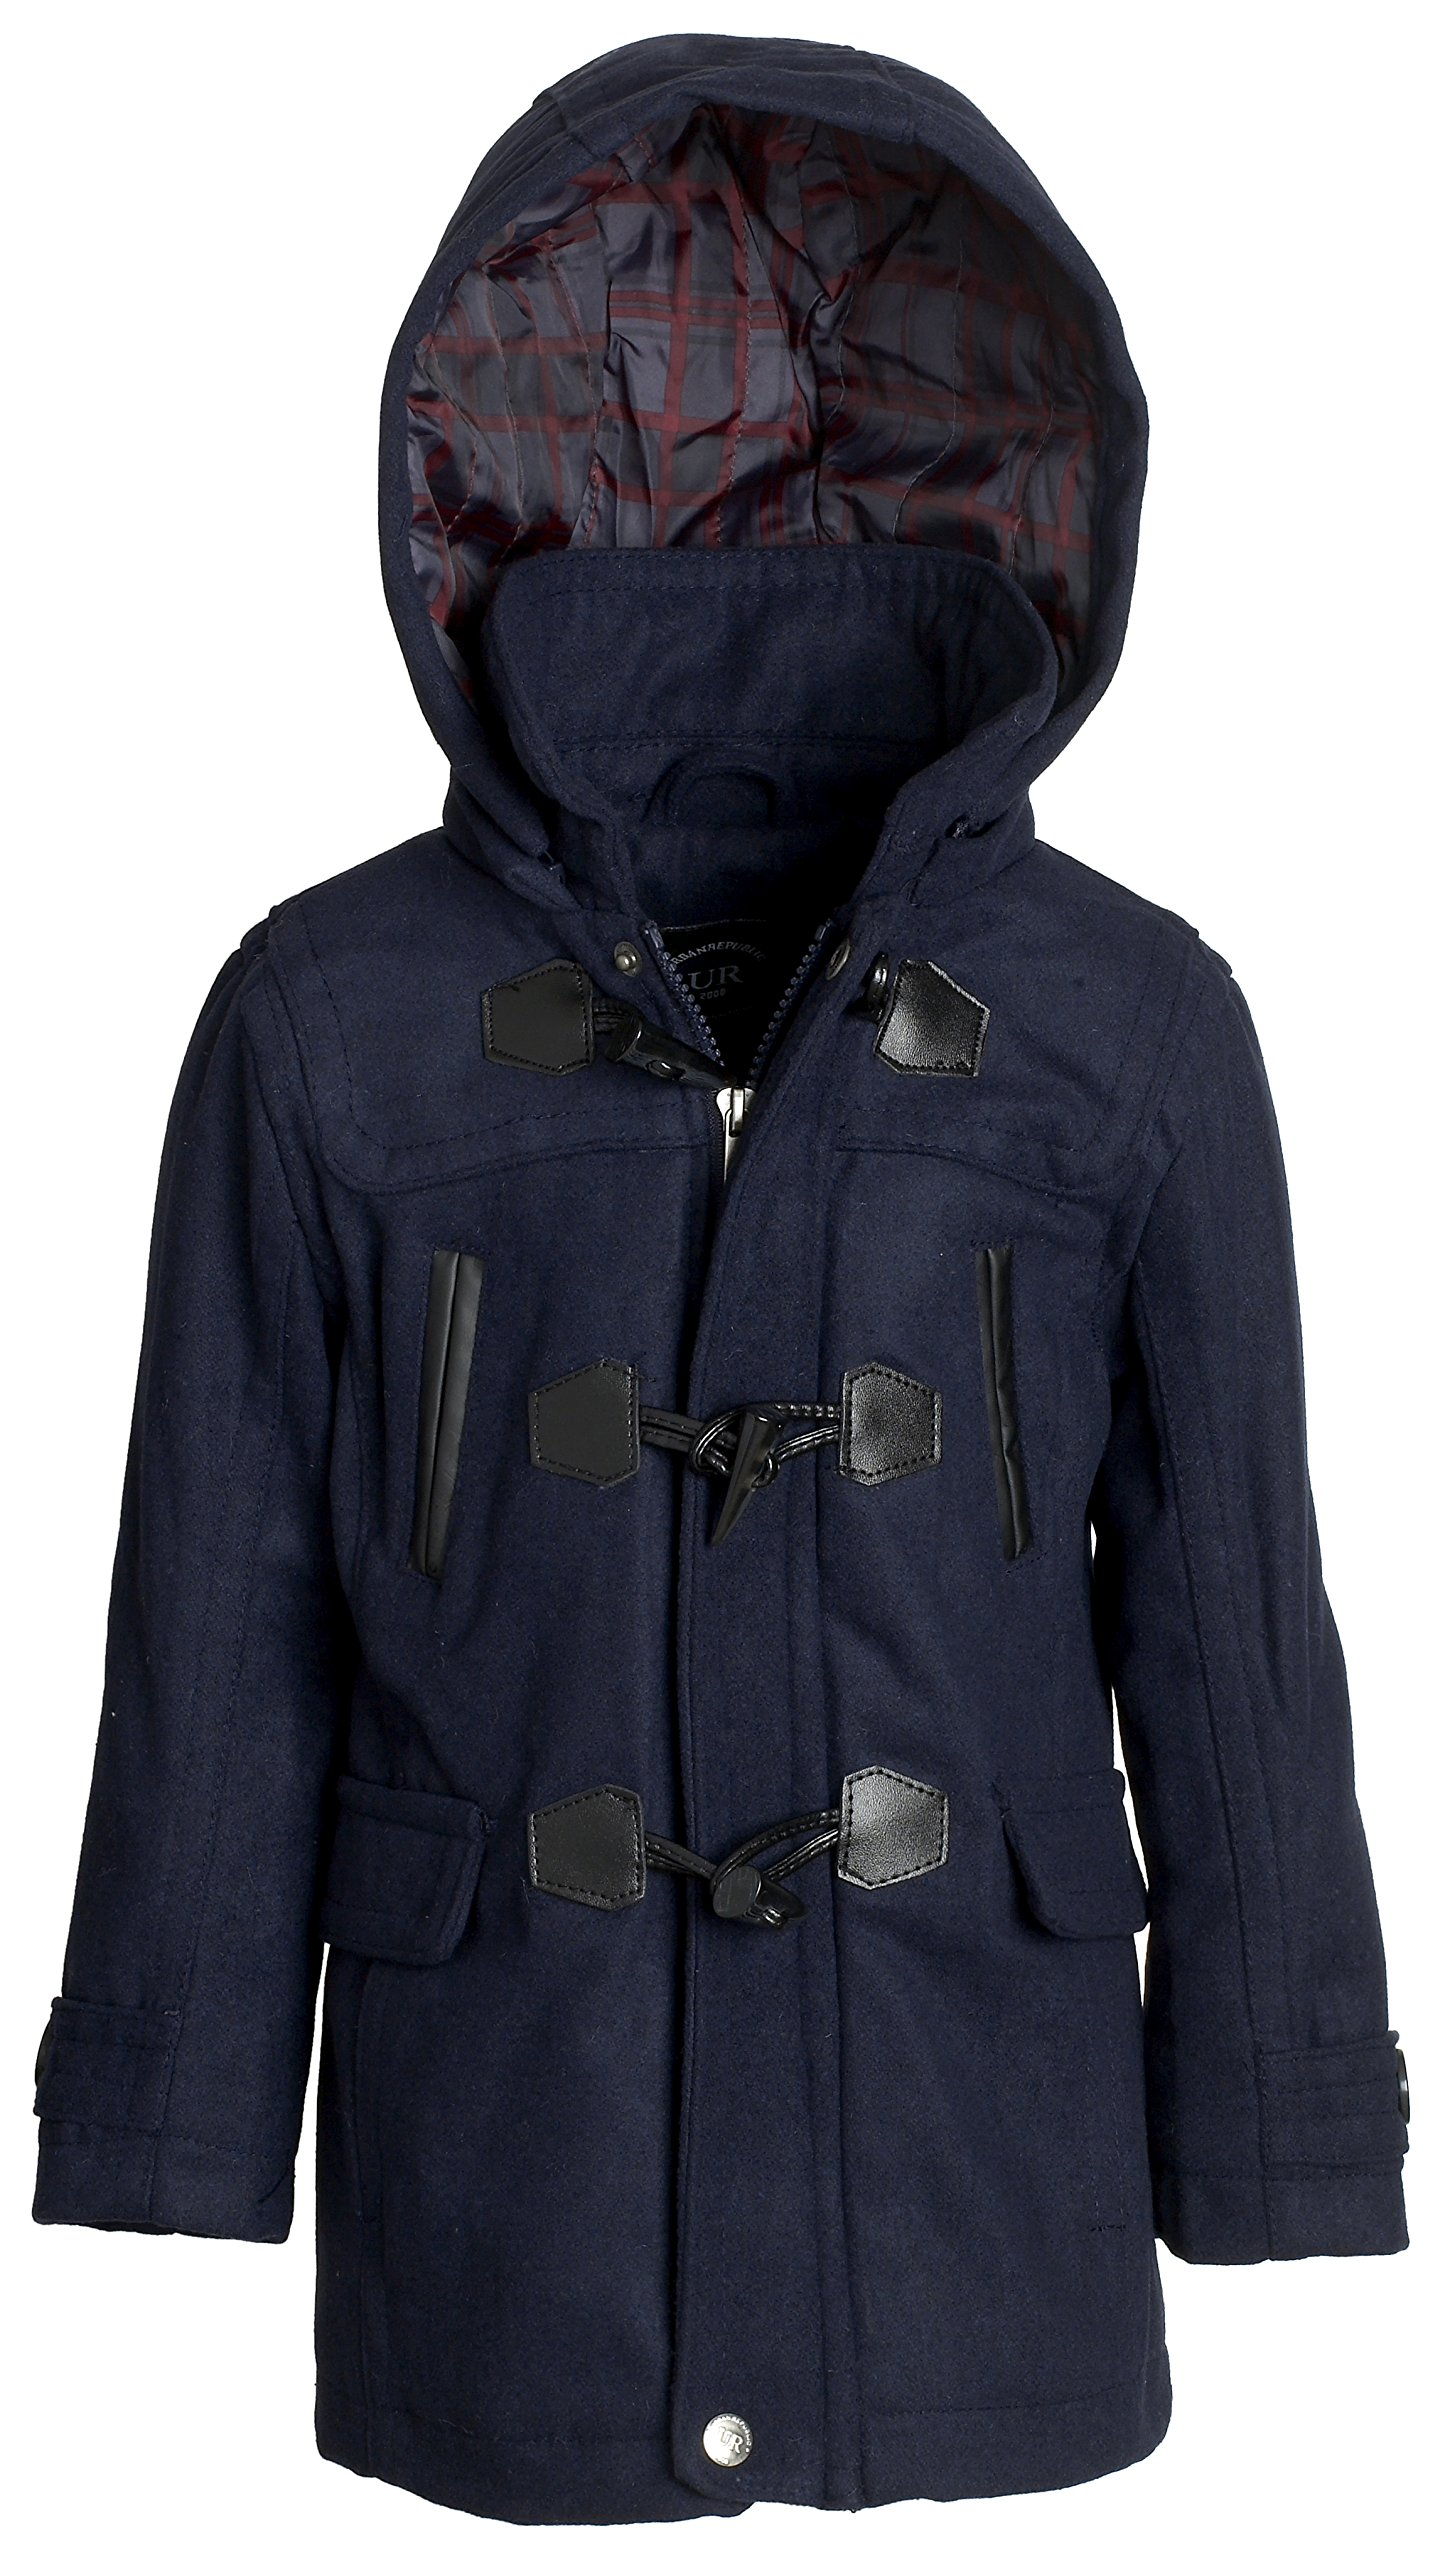 Urban Republic Boys Classic Wool Winter Toggle Coat with Hood & Quilted Lining - Navy (Size 18/20)